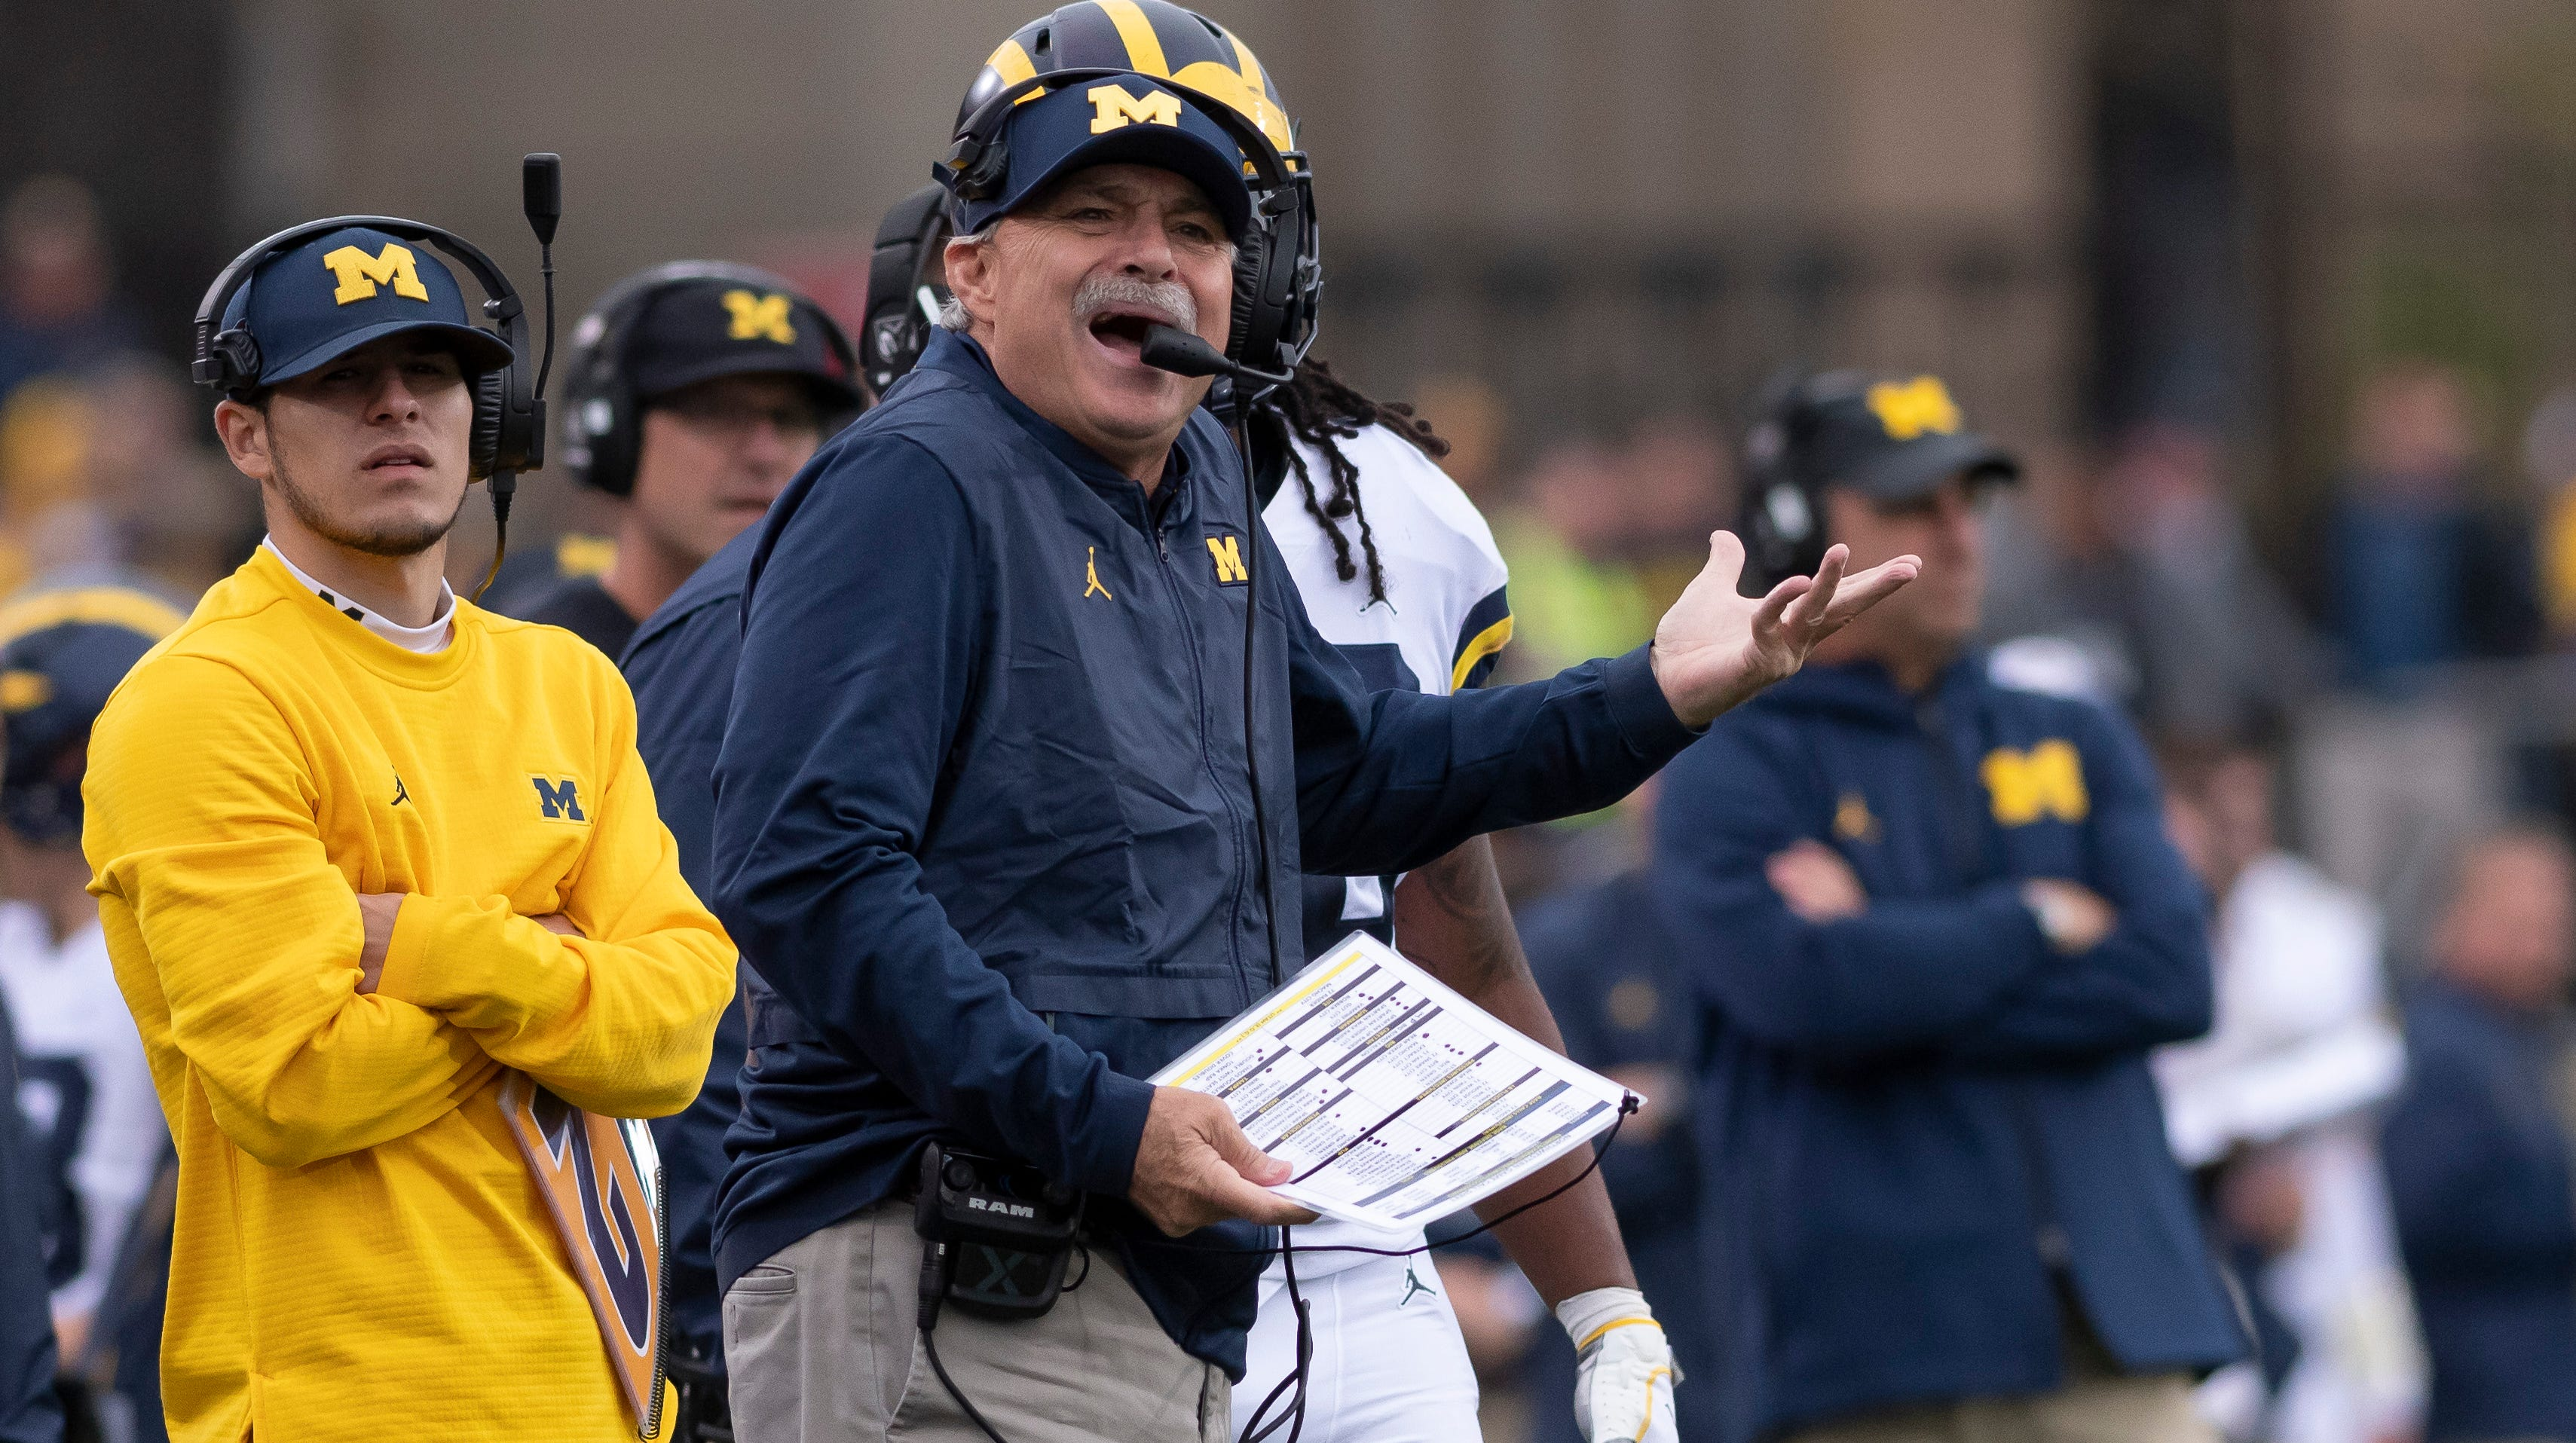 Michigan mailbag: Don't expect Michigan Wolverines to turn turkey in football home stretch